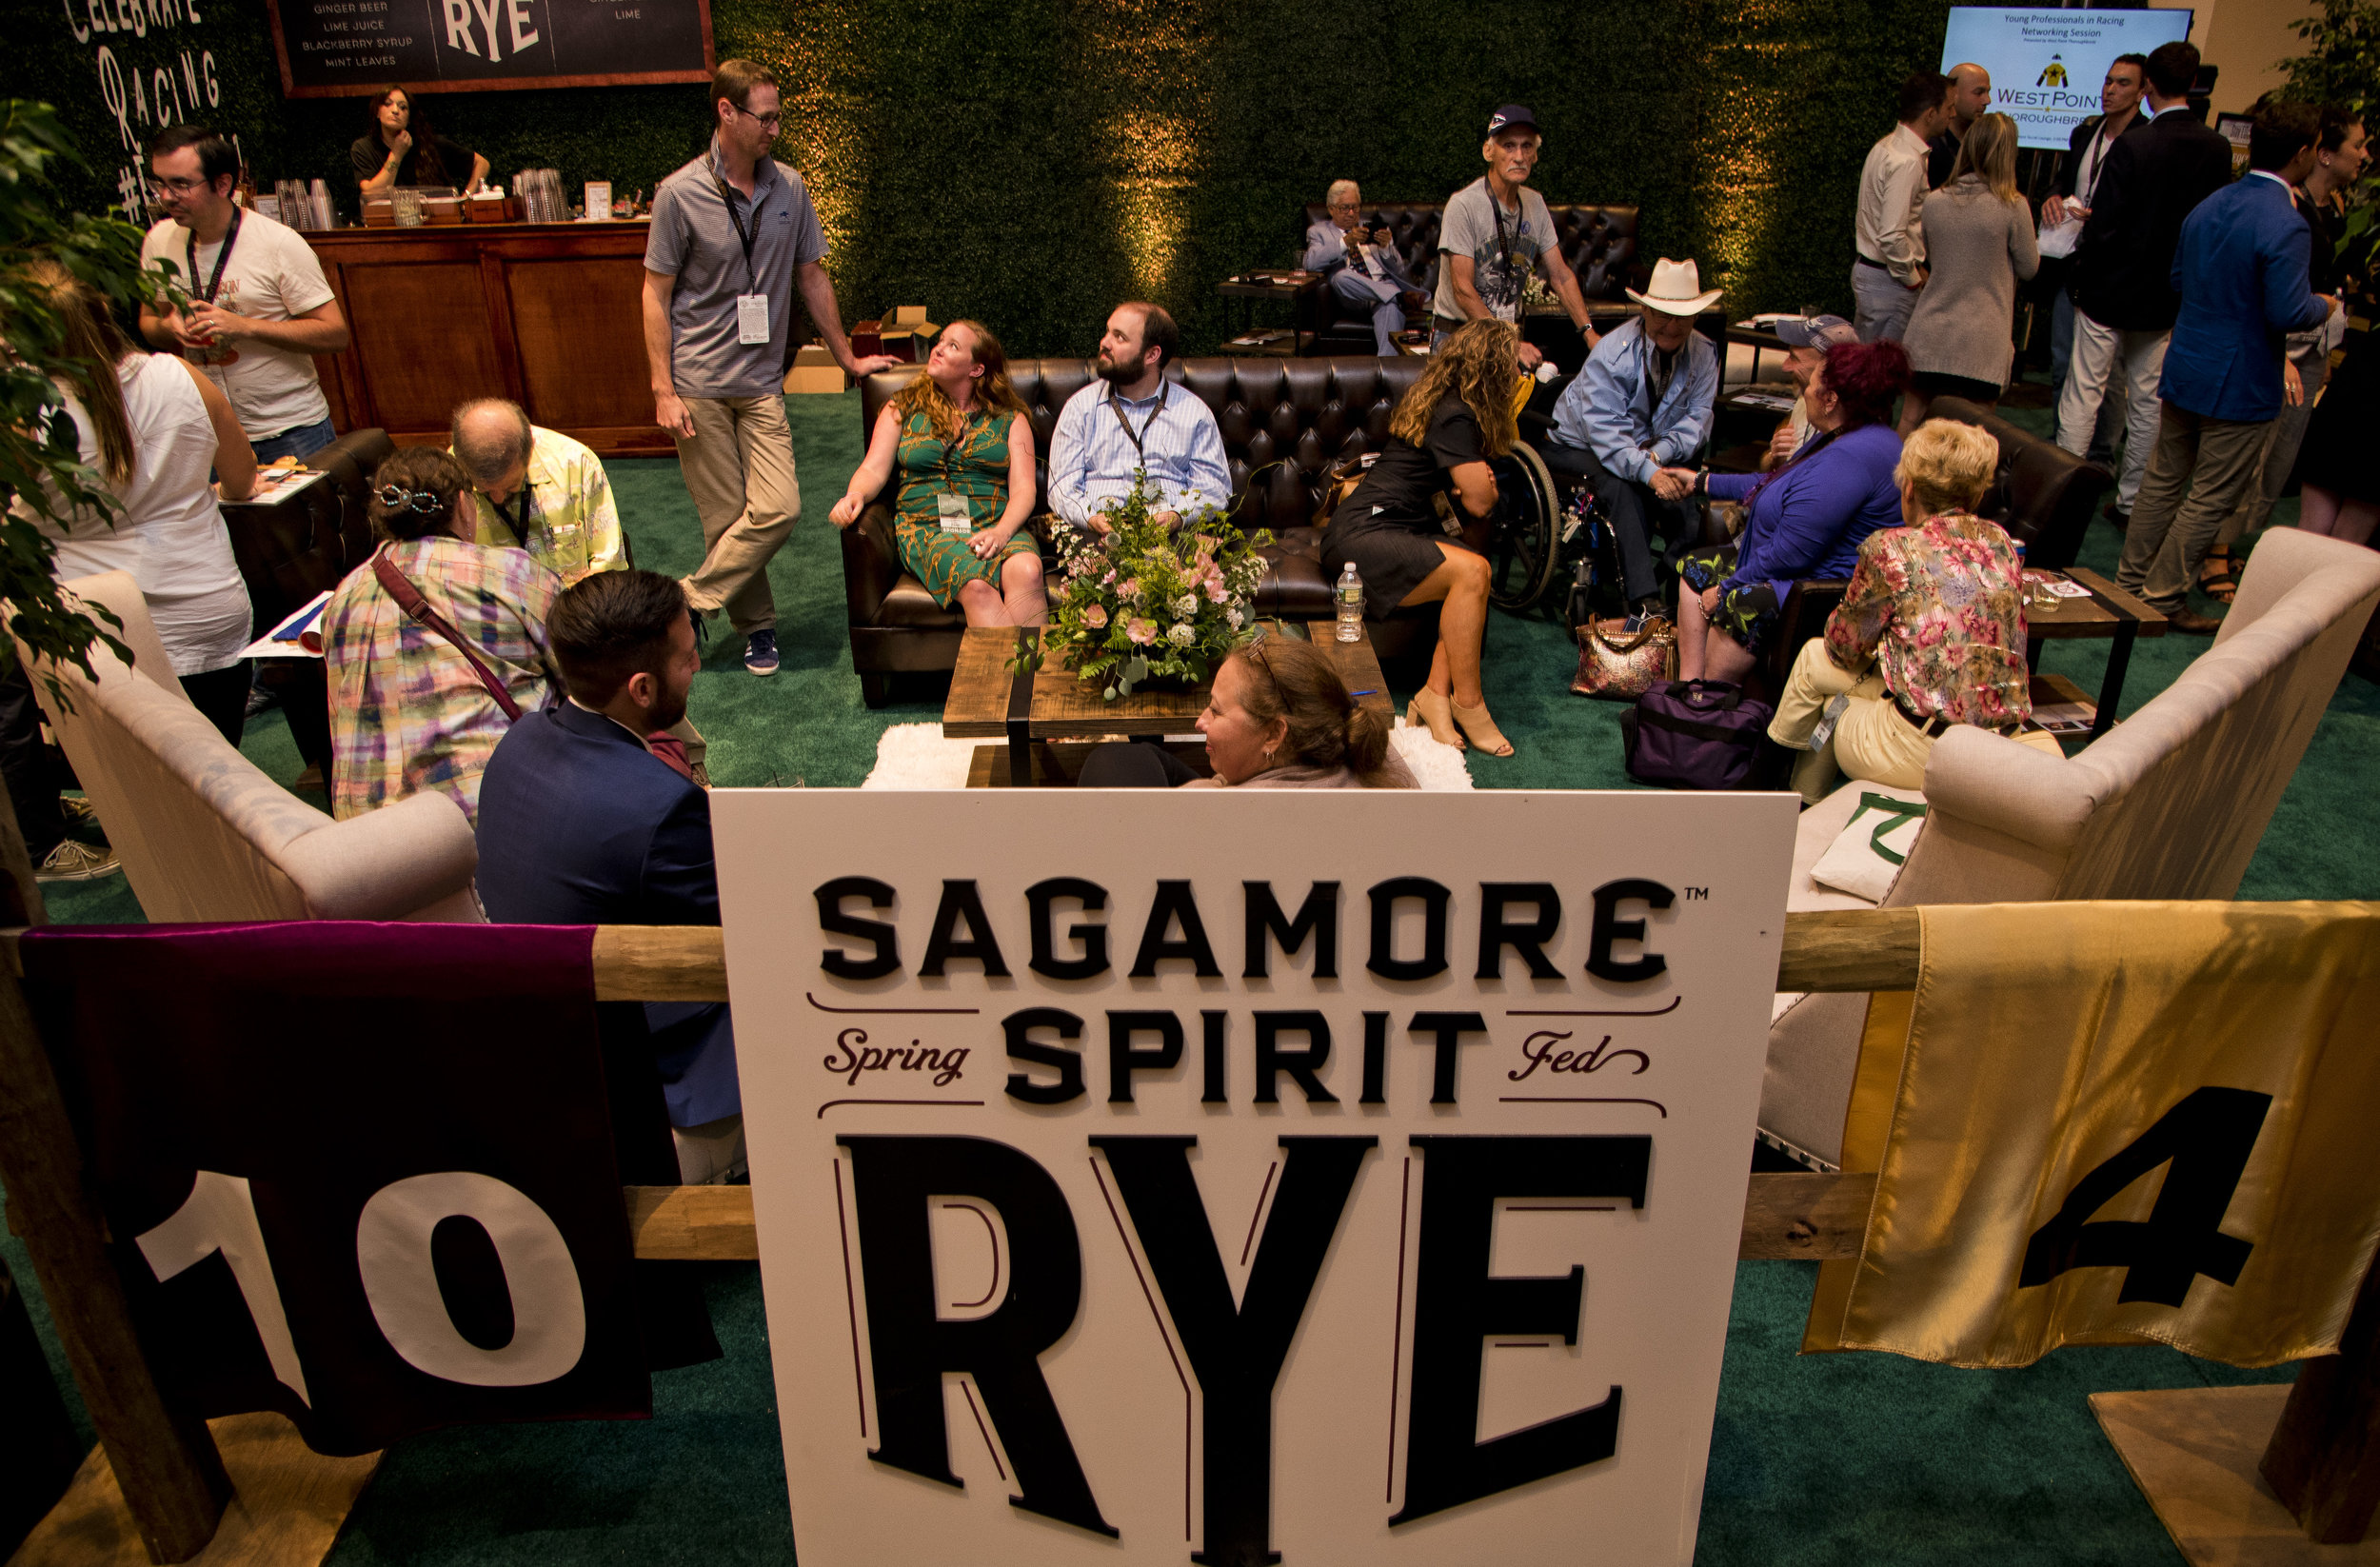 Guests networking in the Sagamore Social Lounge at Equestricon 2017.